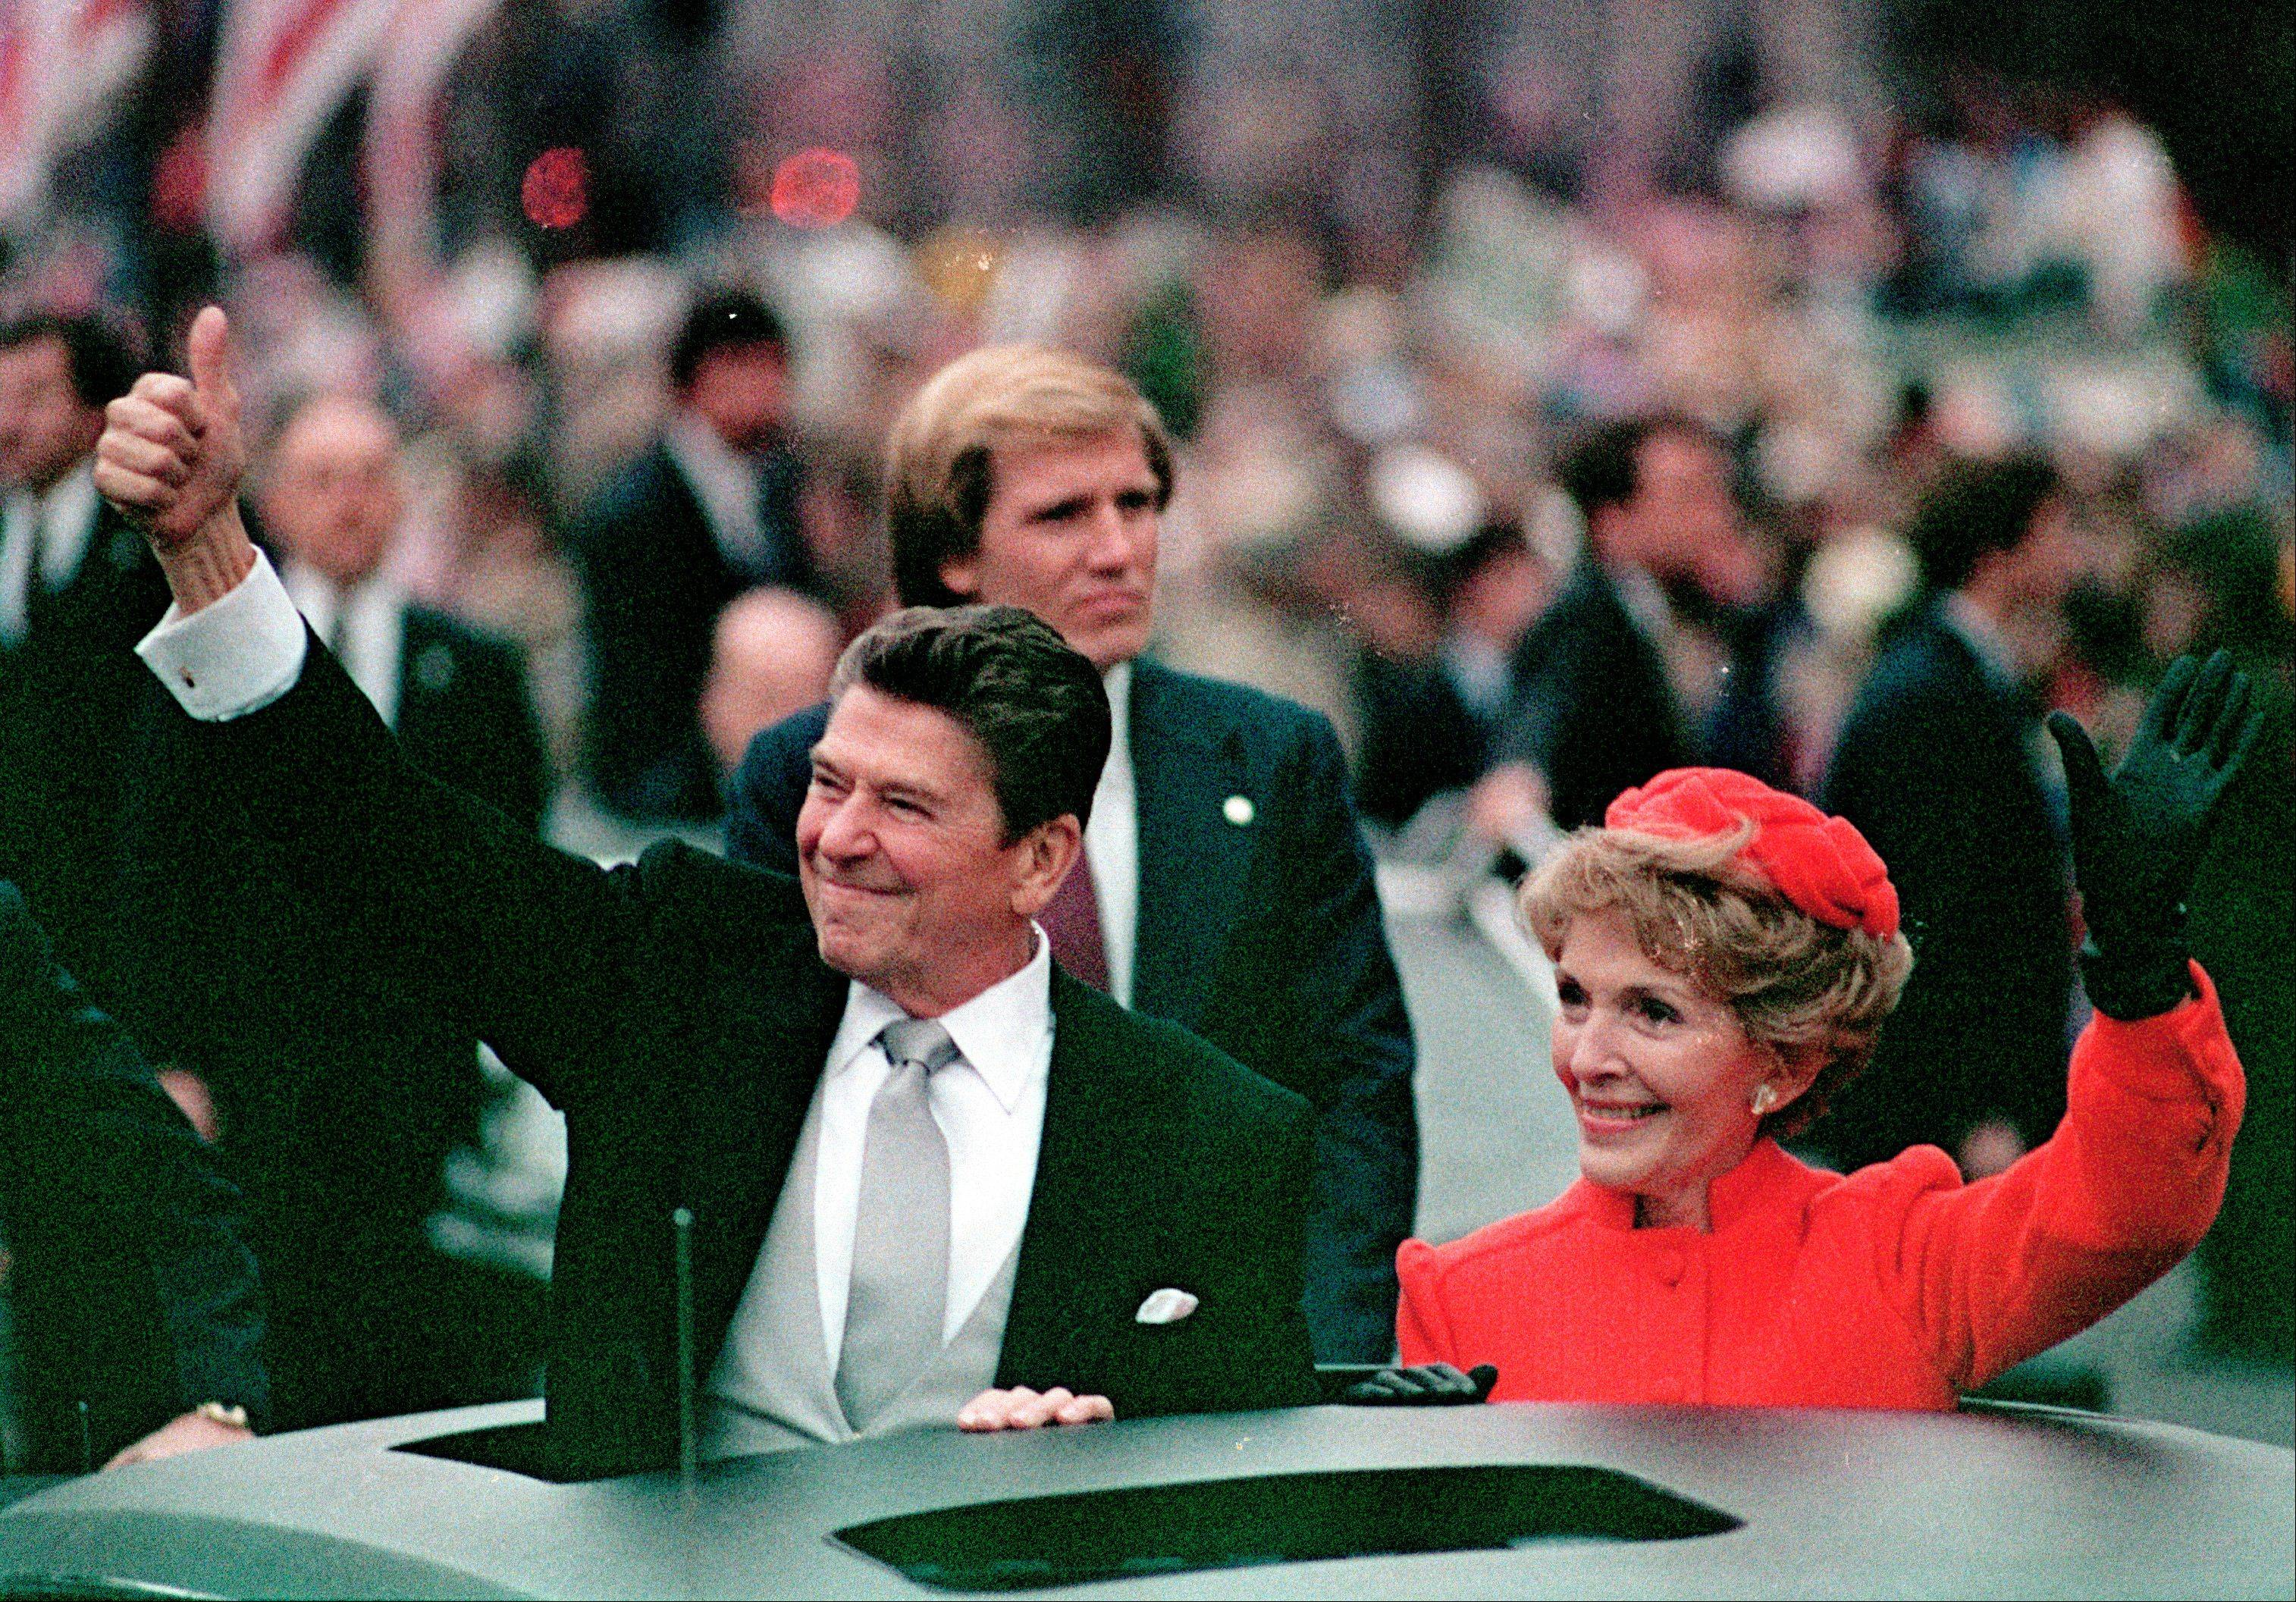 U.S. President Ronald Reagan gives a thumbs up sign to the crowd as his wife, first lady Nancy Reagan, waves from limousine during the inaugural parade in Washington, D.C., Jan. 20, 1981.